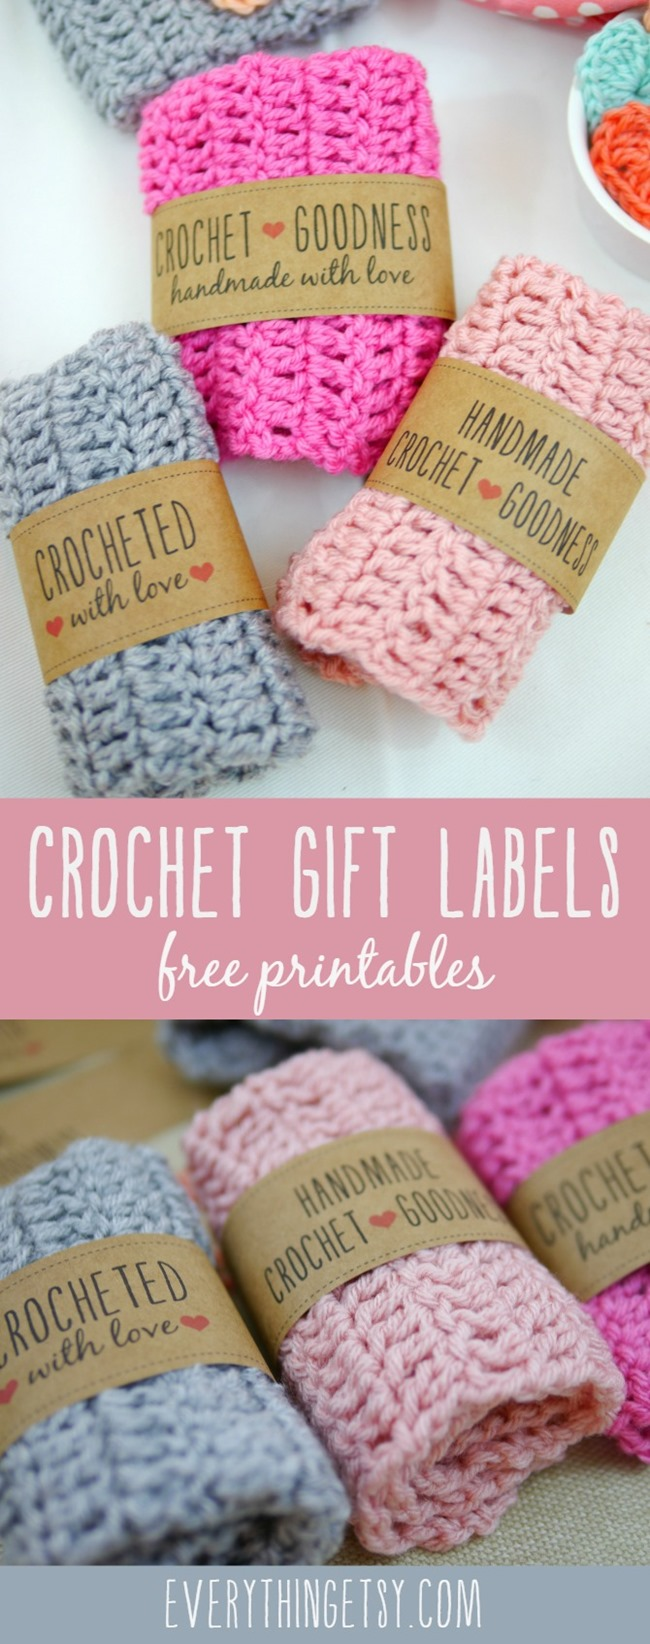 How To Tag Your Crochet For Craft Sales